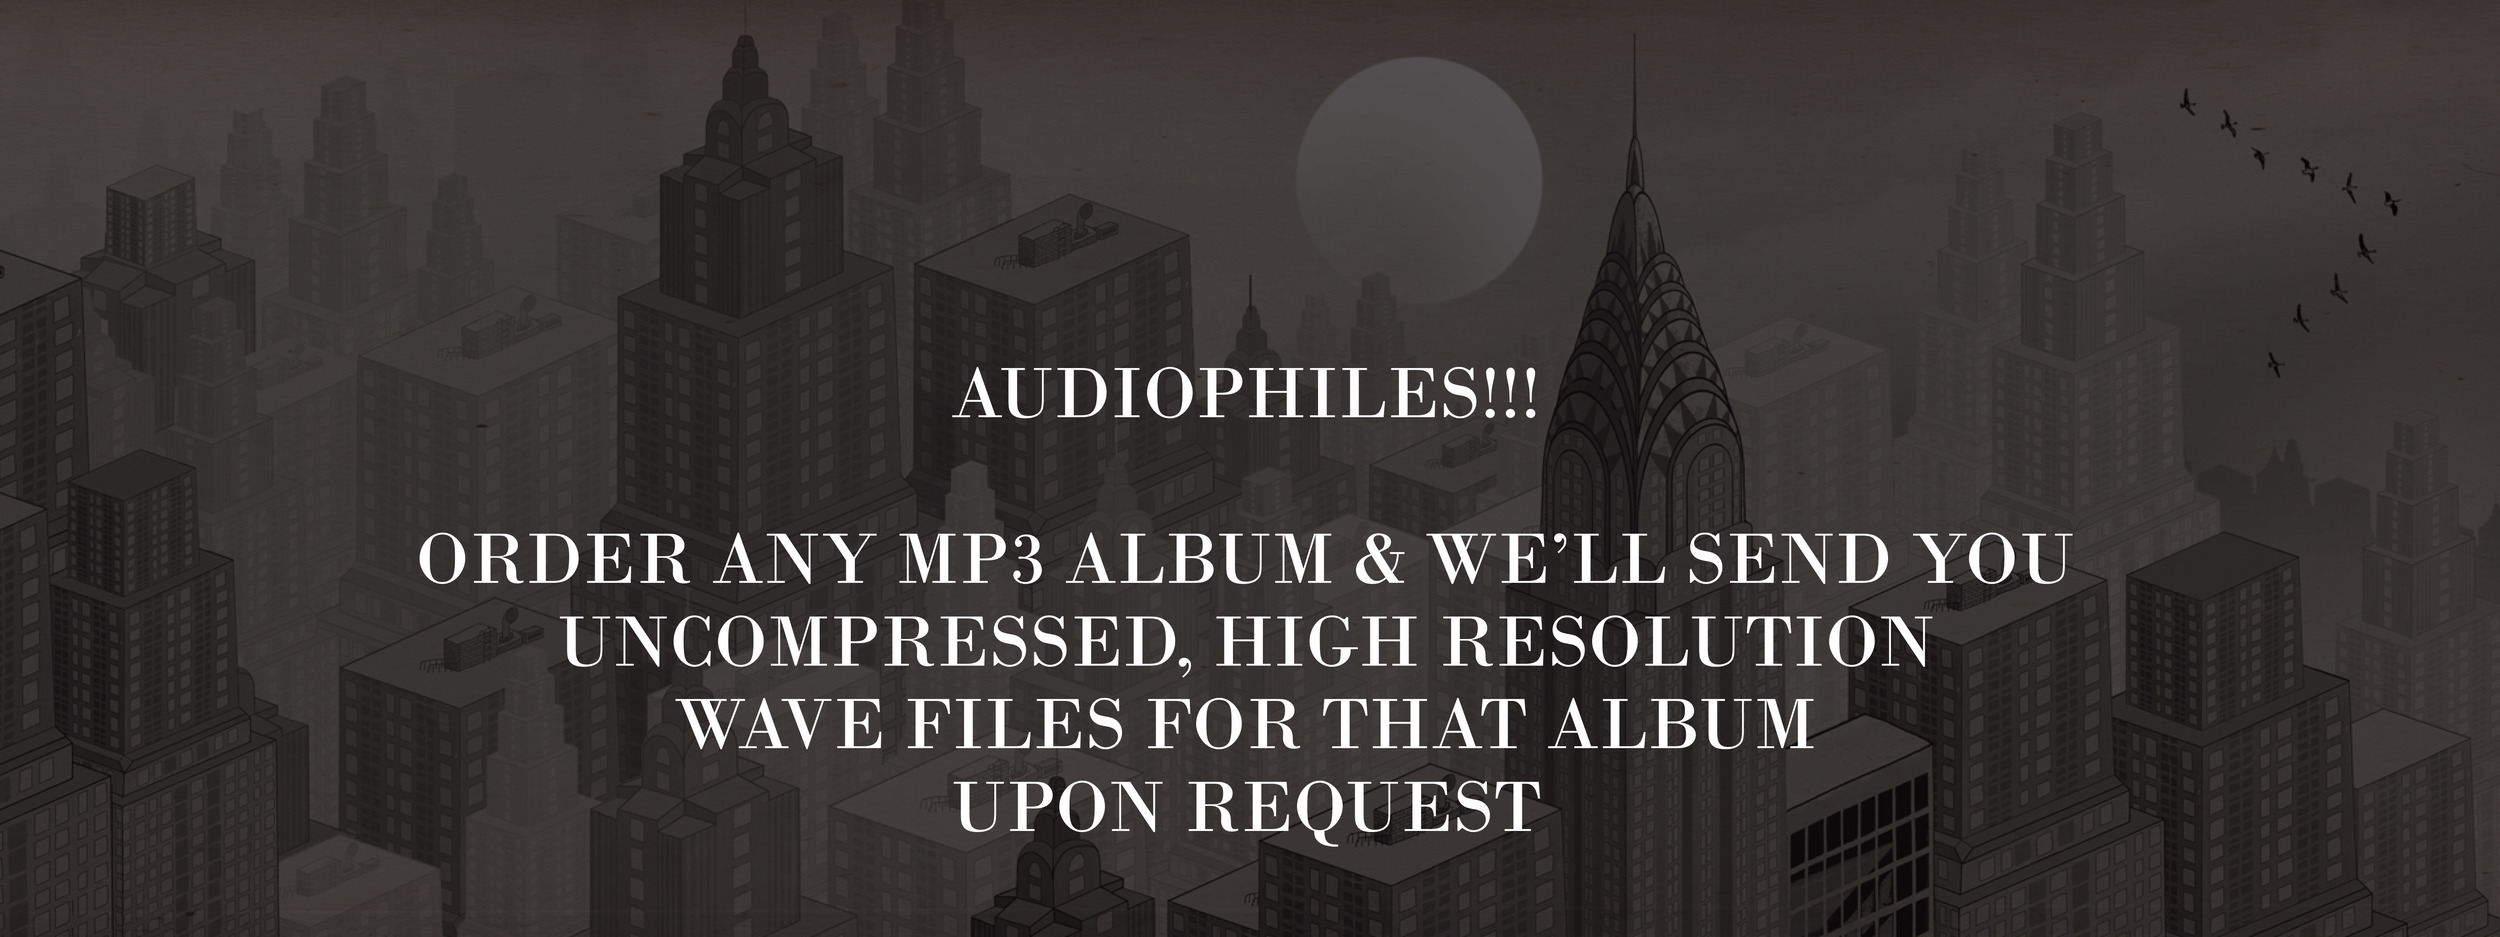 Audiophiles banner with Text 002.jpg